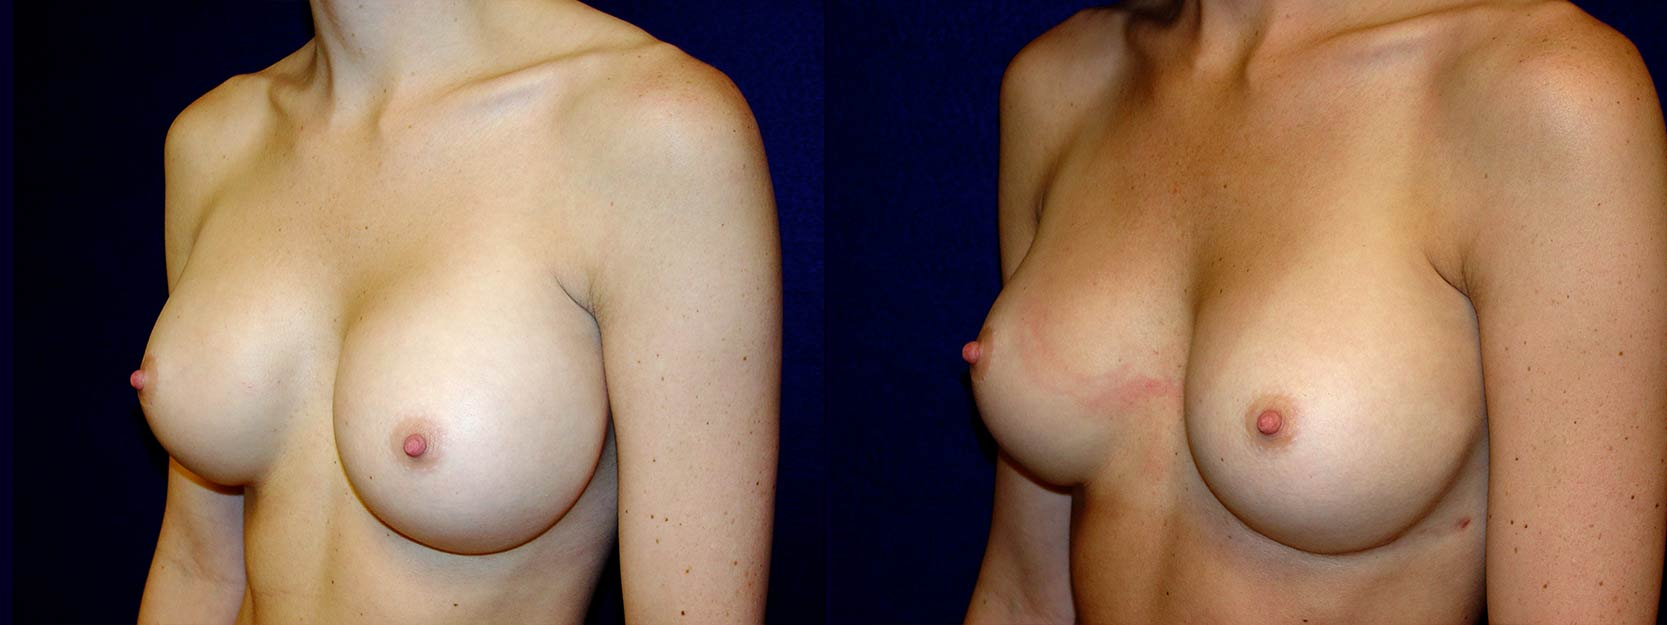 Left 3/4 View - Breast Implant Revision - Silicone Implants